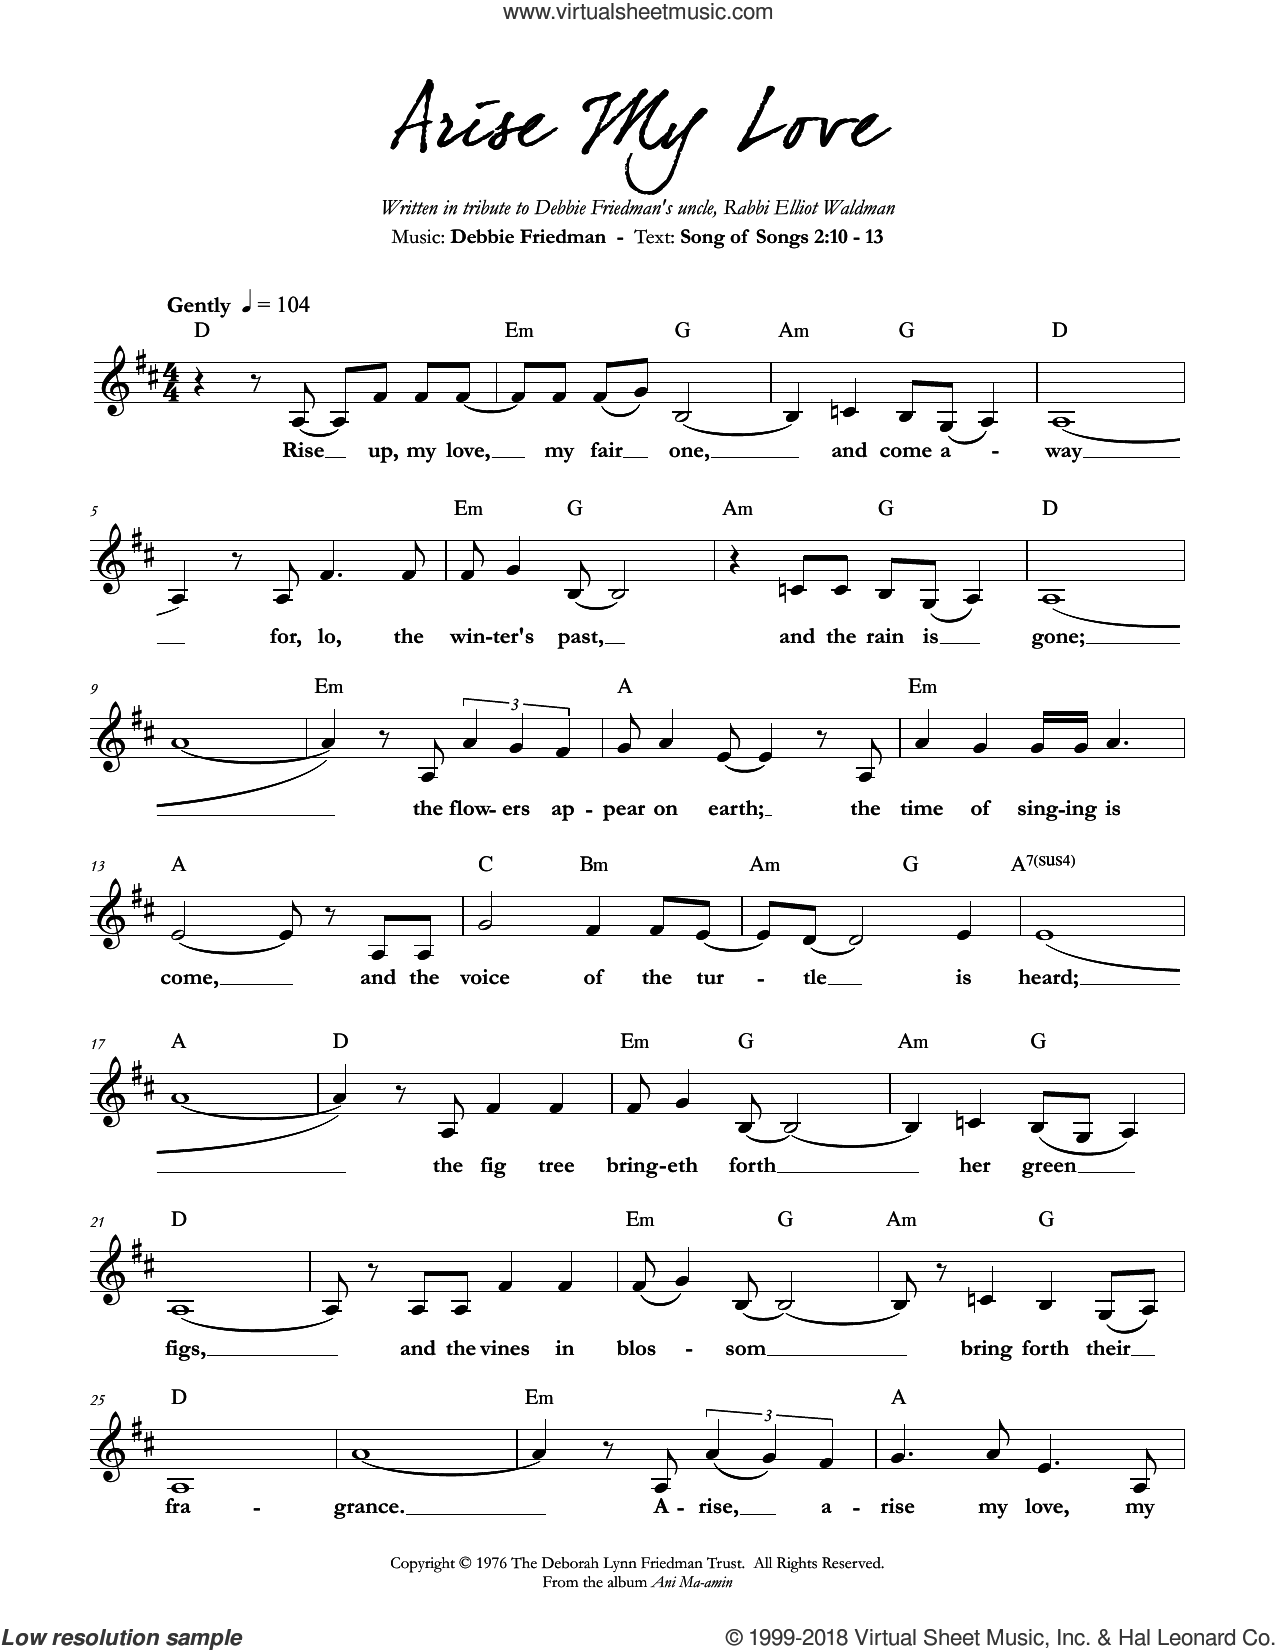 Arise My Love sheet music for voice and other instruments (fake book) by Debbie Friedman, intermediate skill level